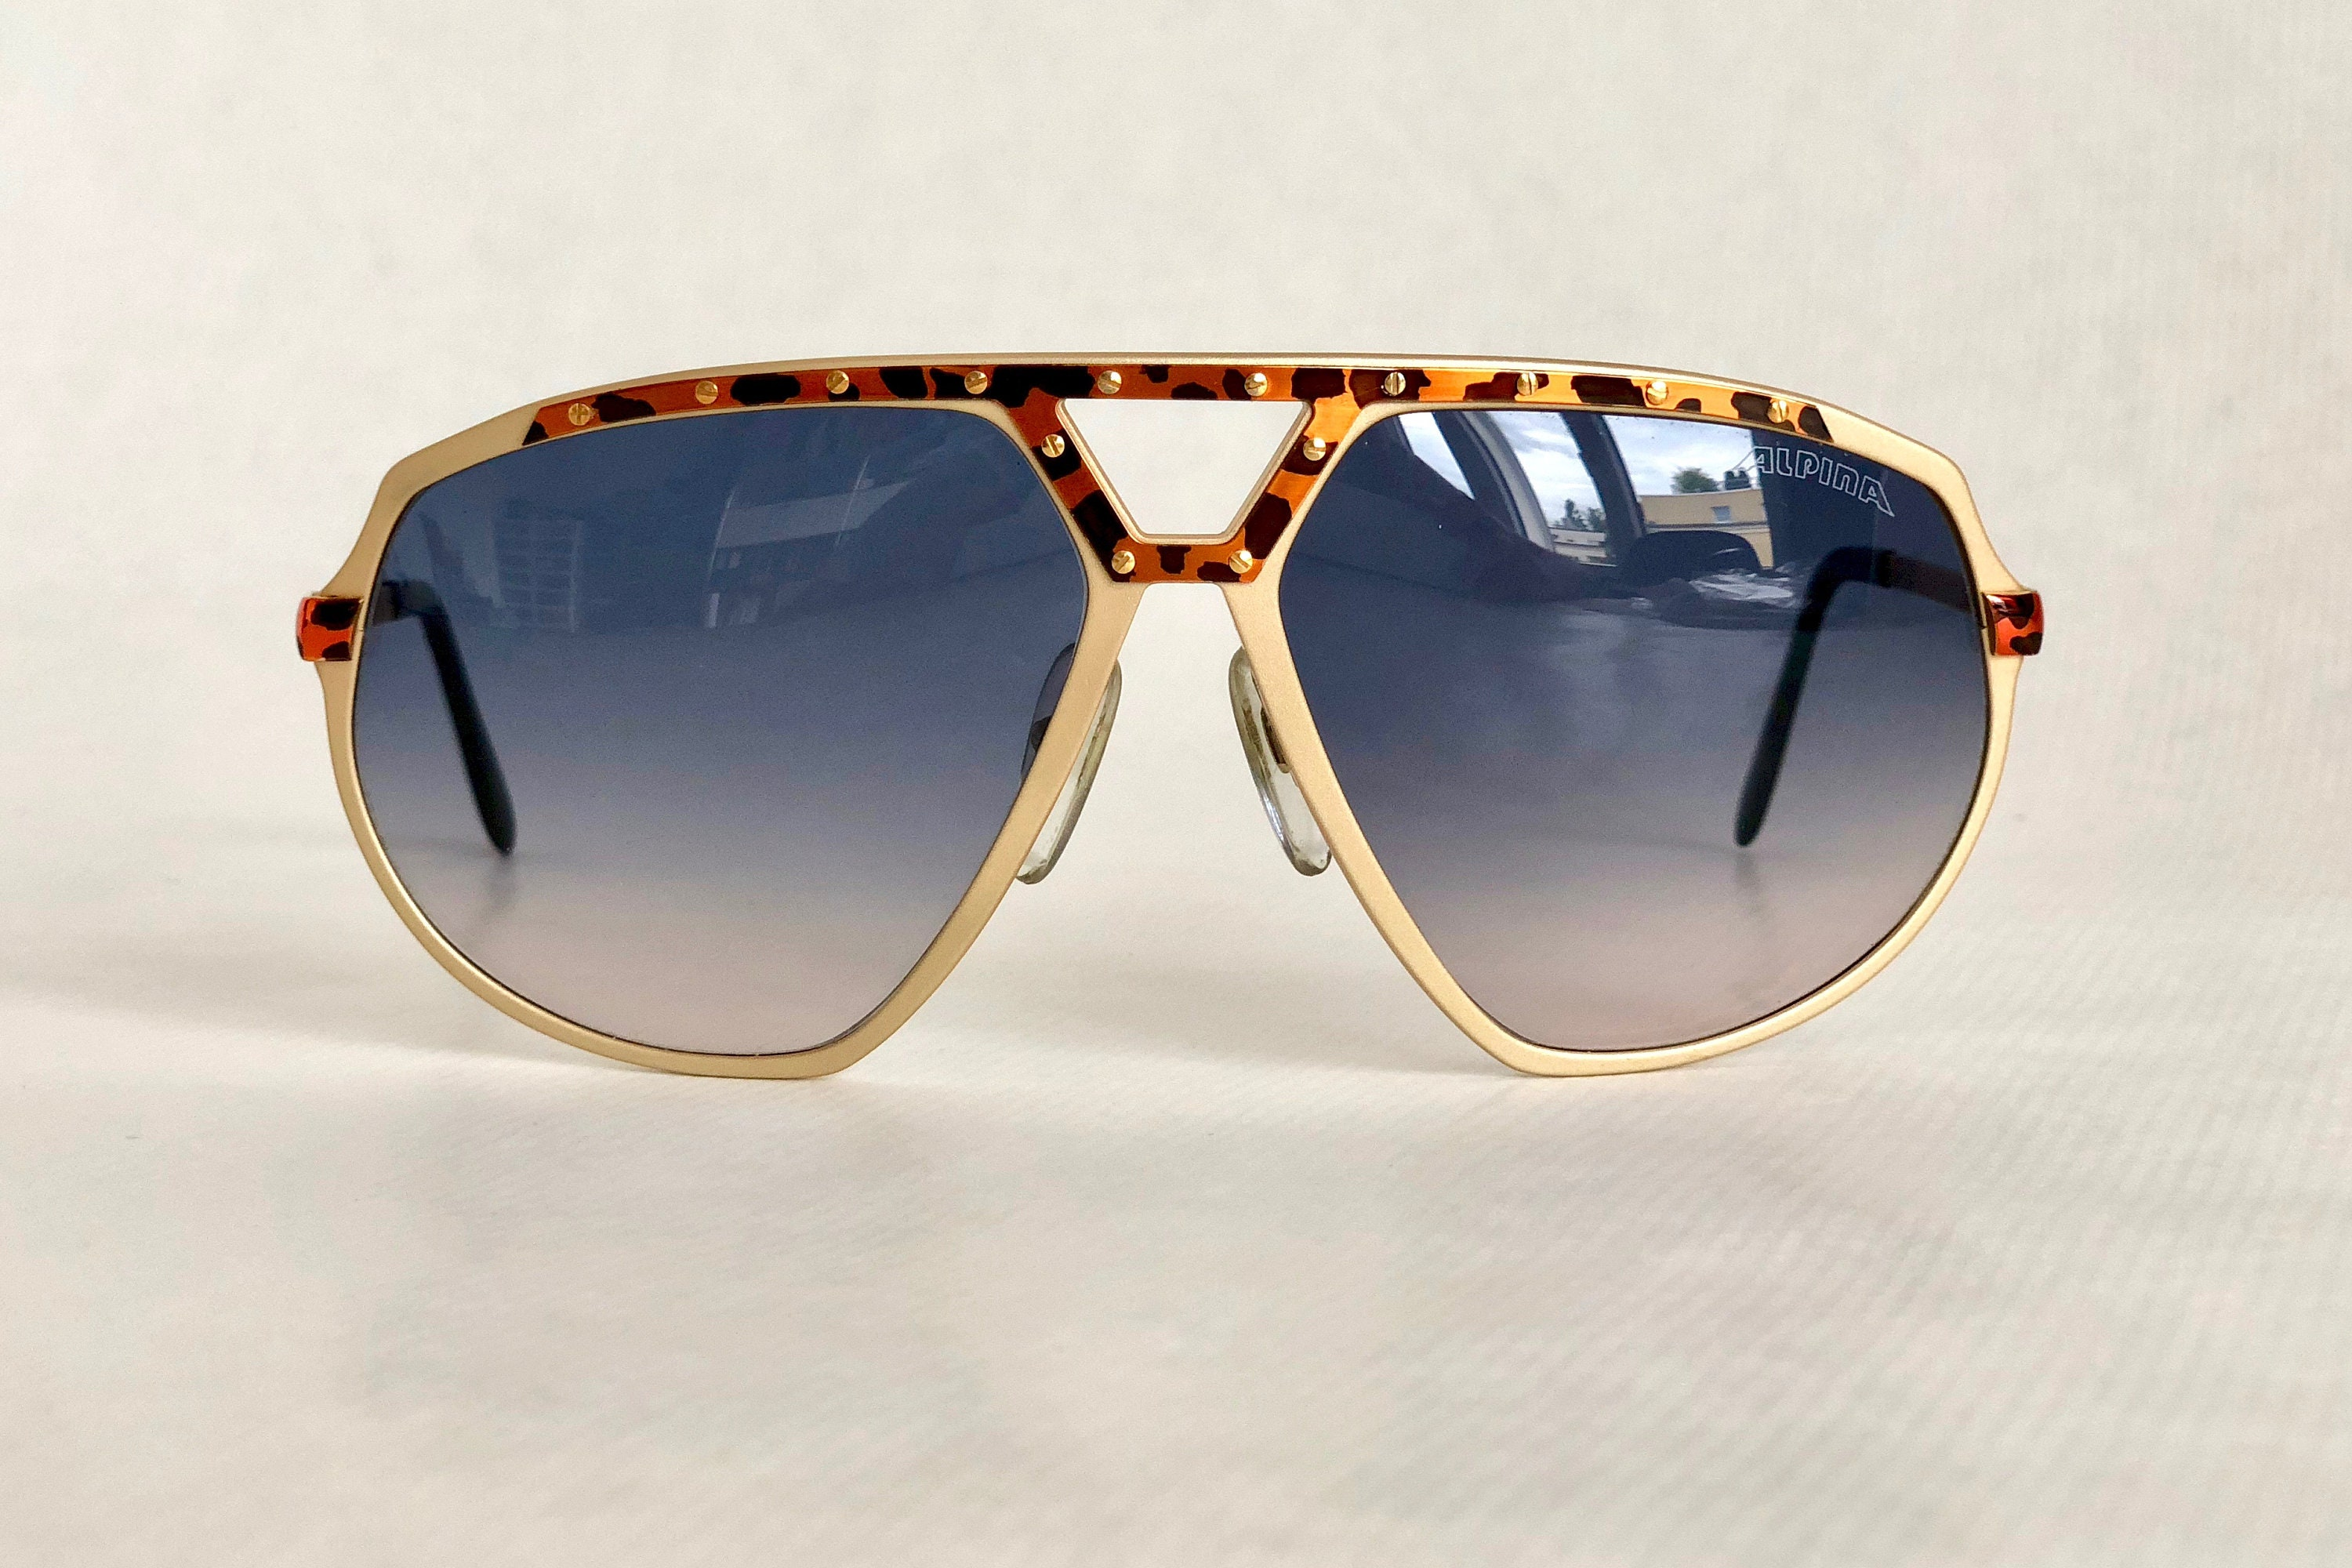 ce9a71c54be6 Alpina M1/8 24K Gold Vintage Sunglasses West Germany New Old Stock Full Set  including Case, Box and Leaflet